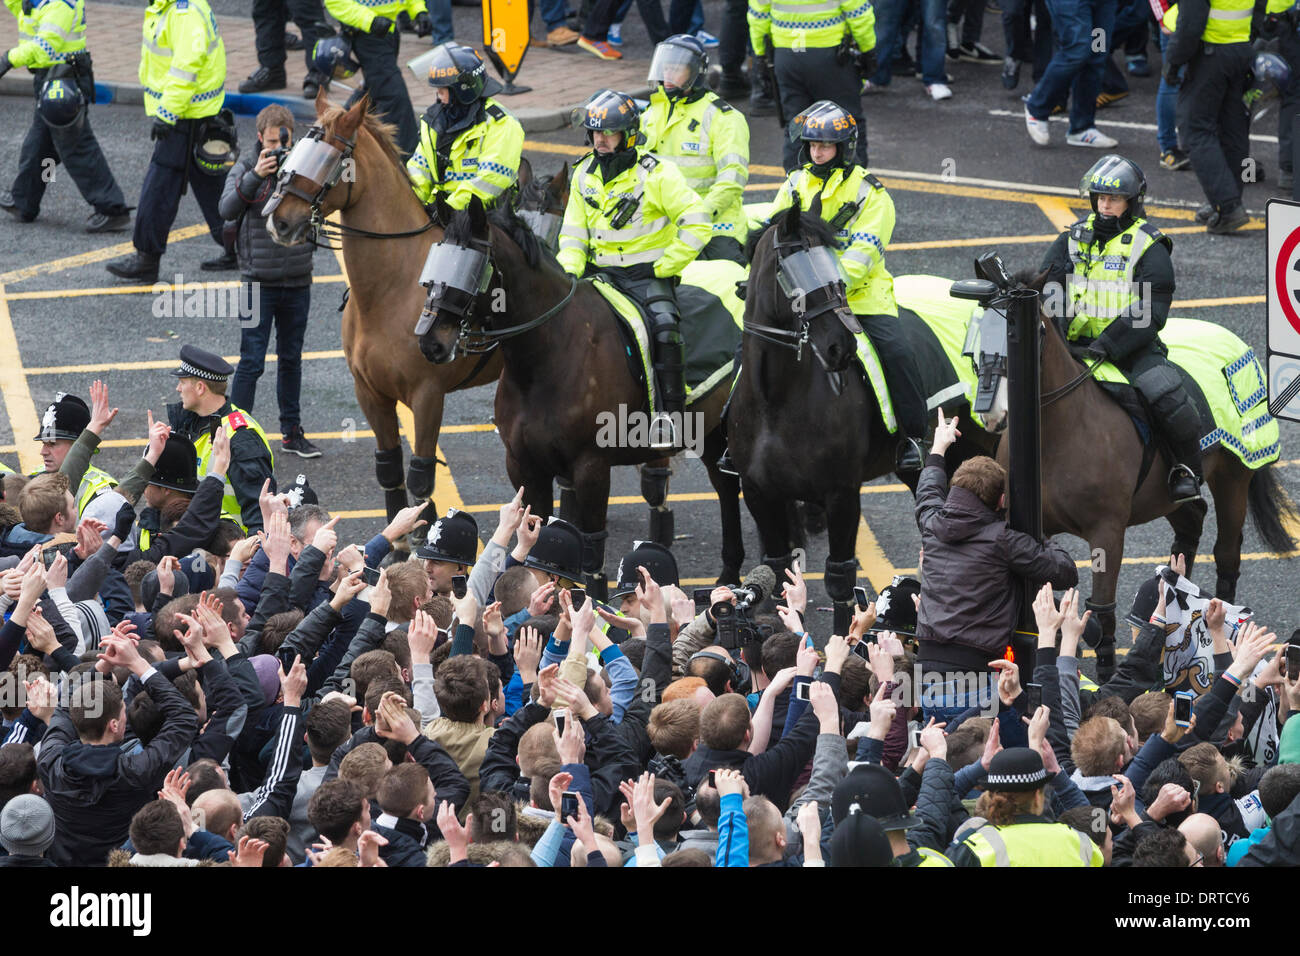 Newcastle United supporters on derby match day. - Stock Image